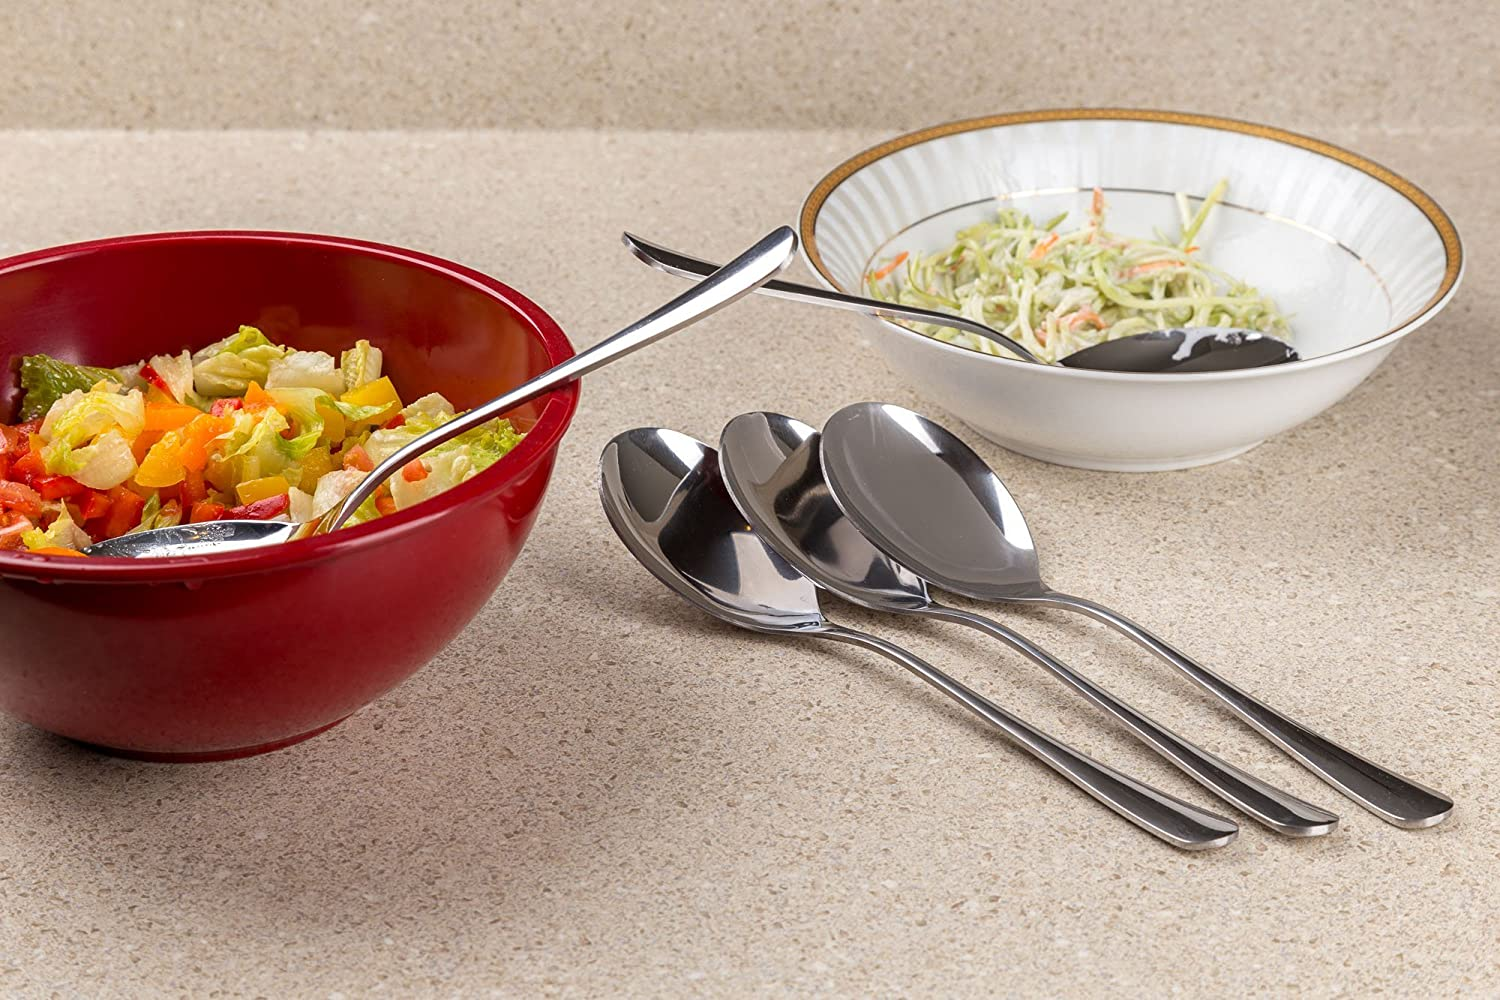 Set of 2 Stainless Steel Large Serving Spoon By Kitchen Winners Buffet /& Banquet Style 10 inch High Polish Finish